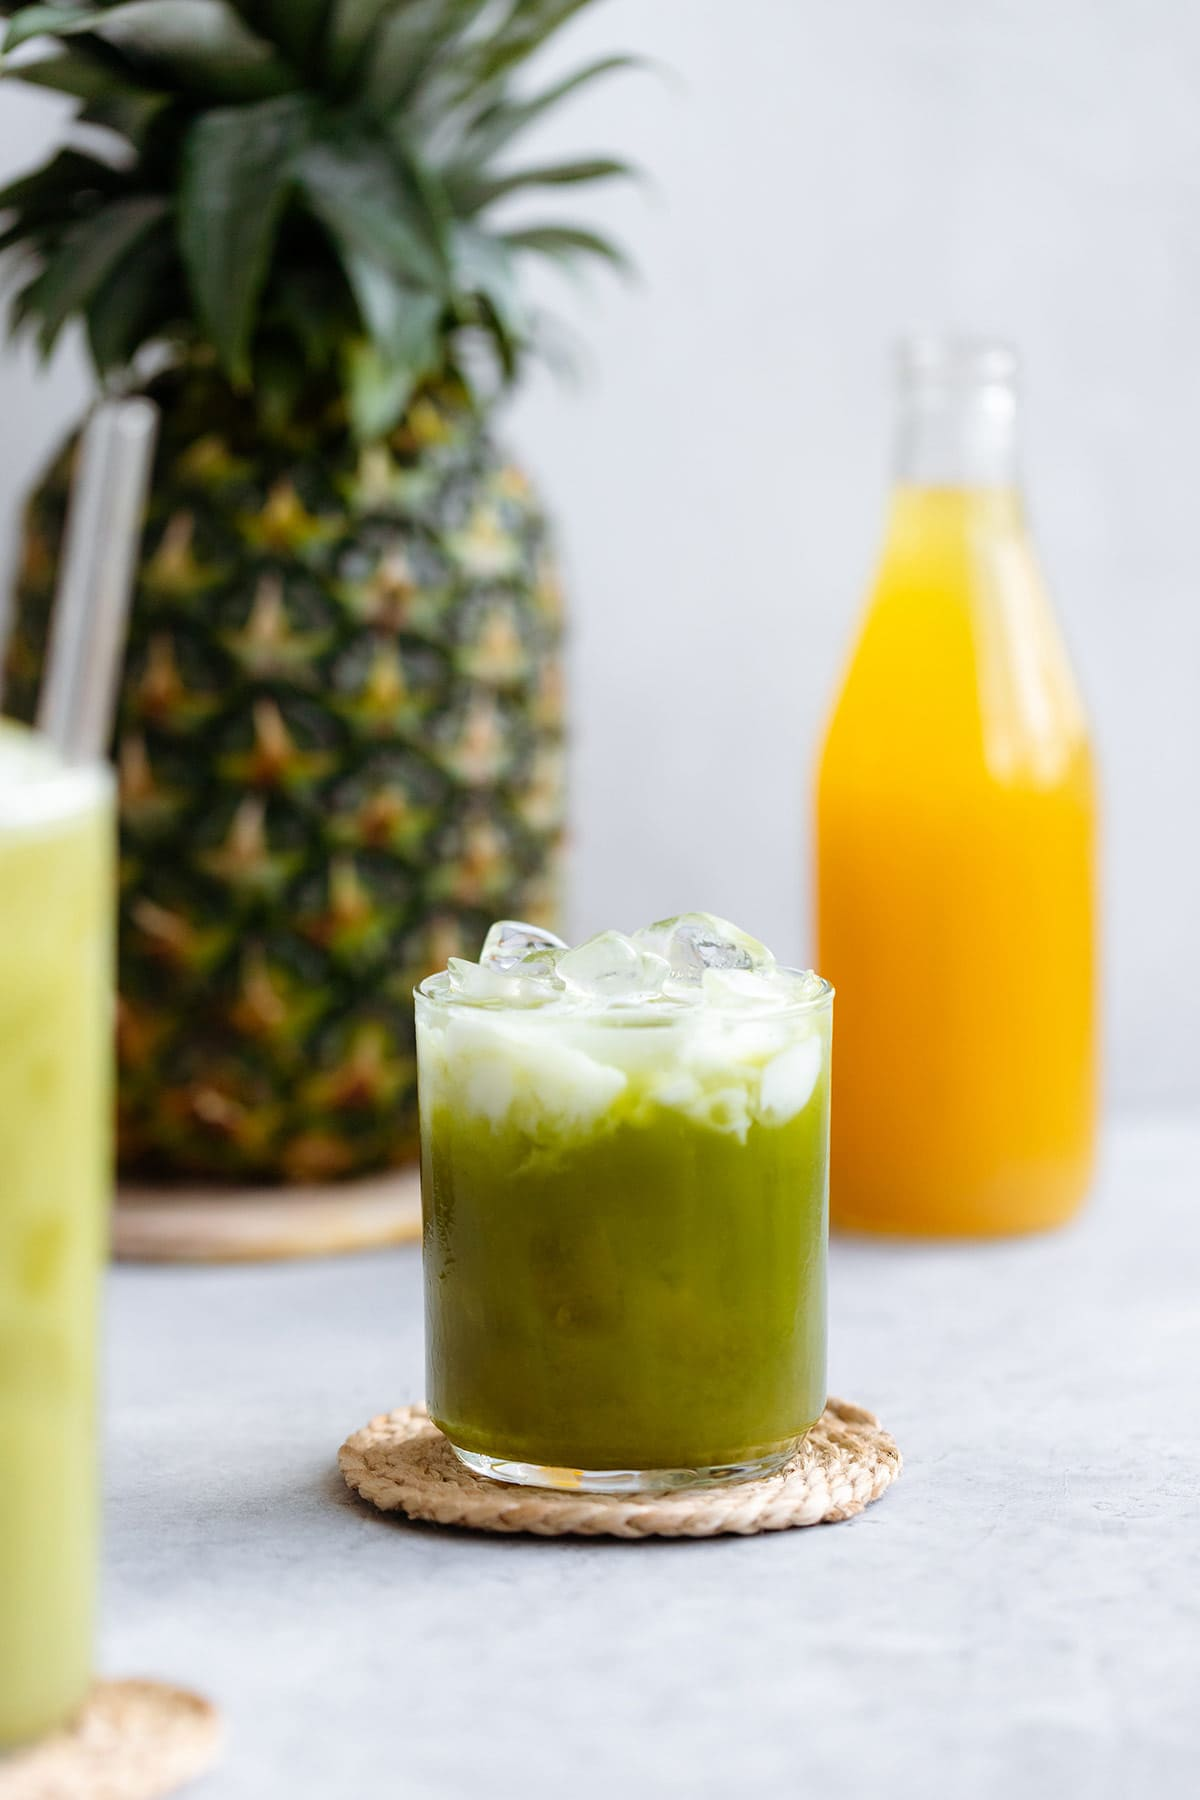 Pineapple matcha drink with coconut milk on top with ice in a short glass.